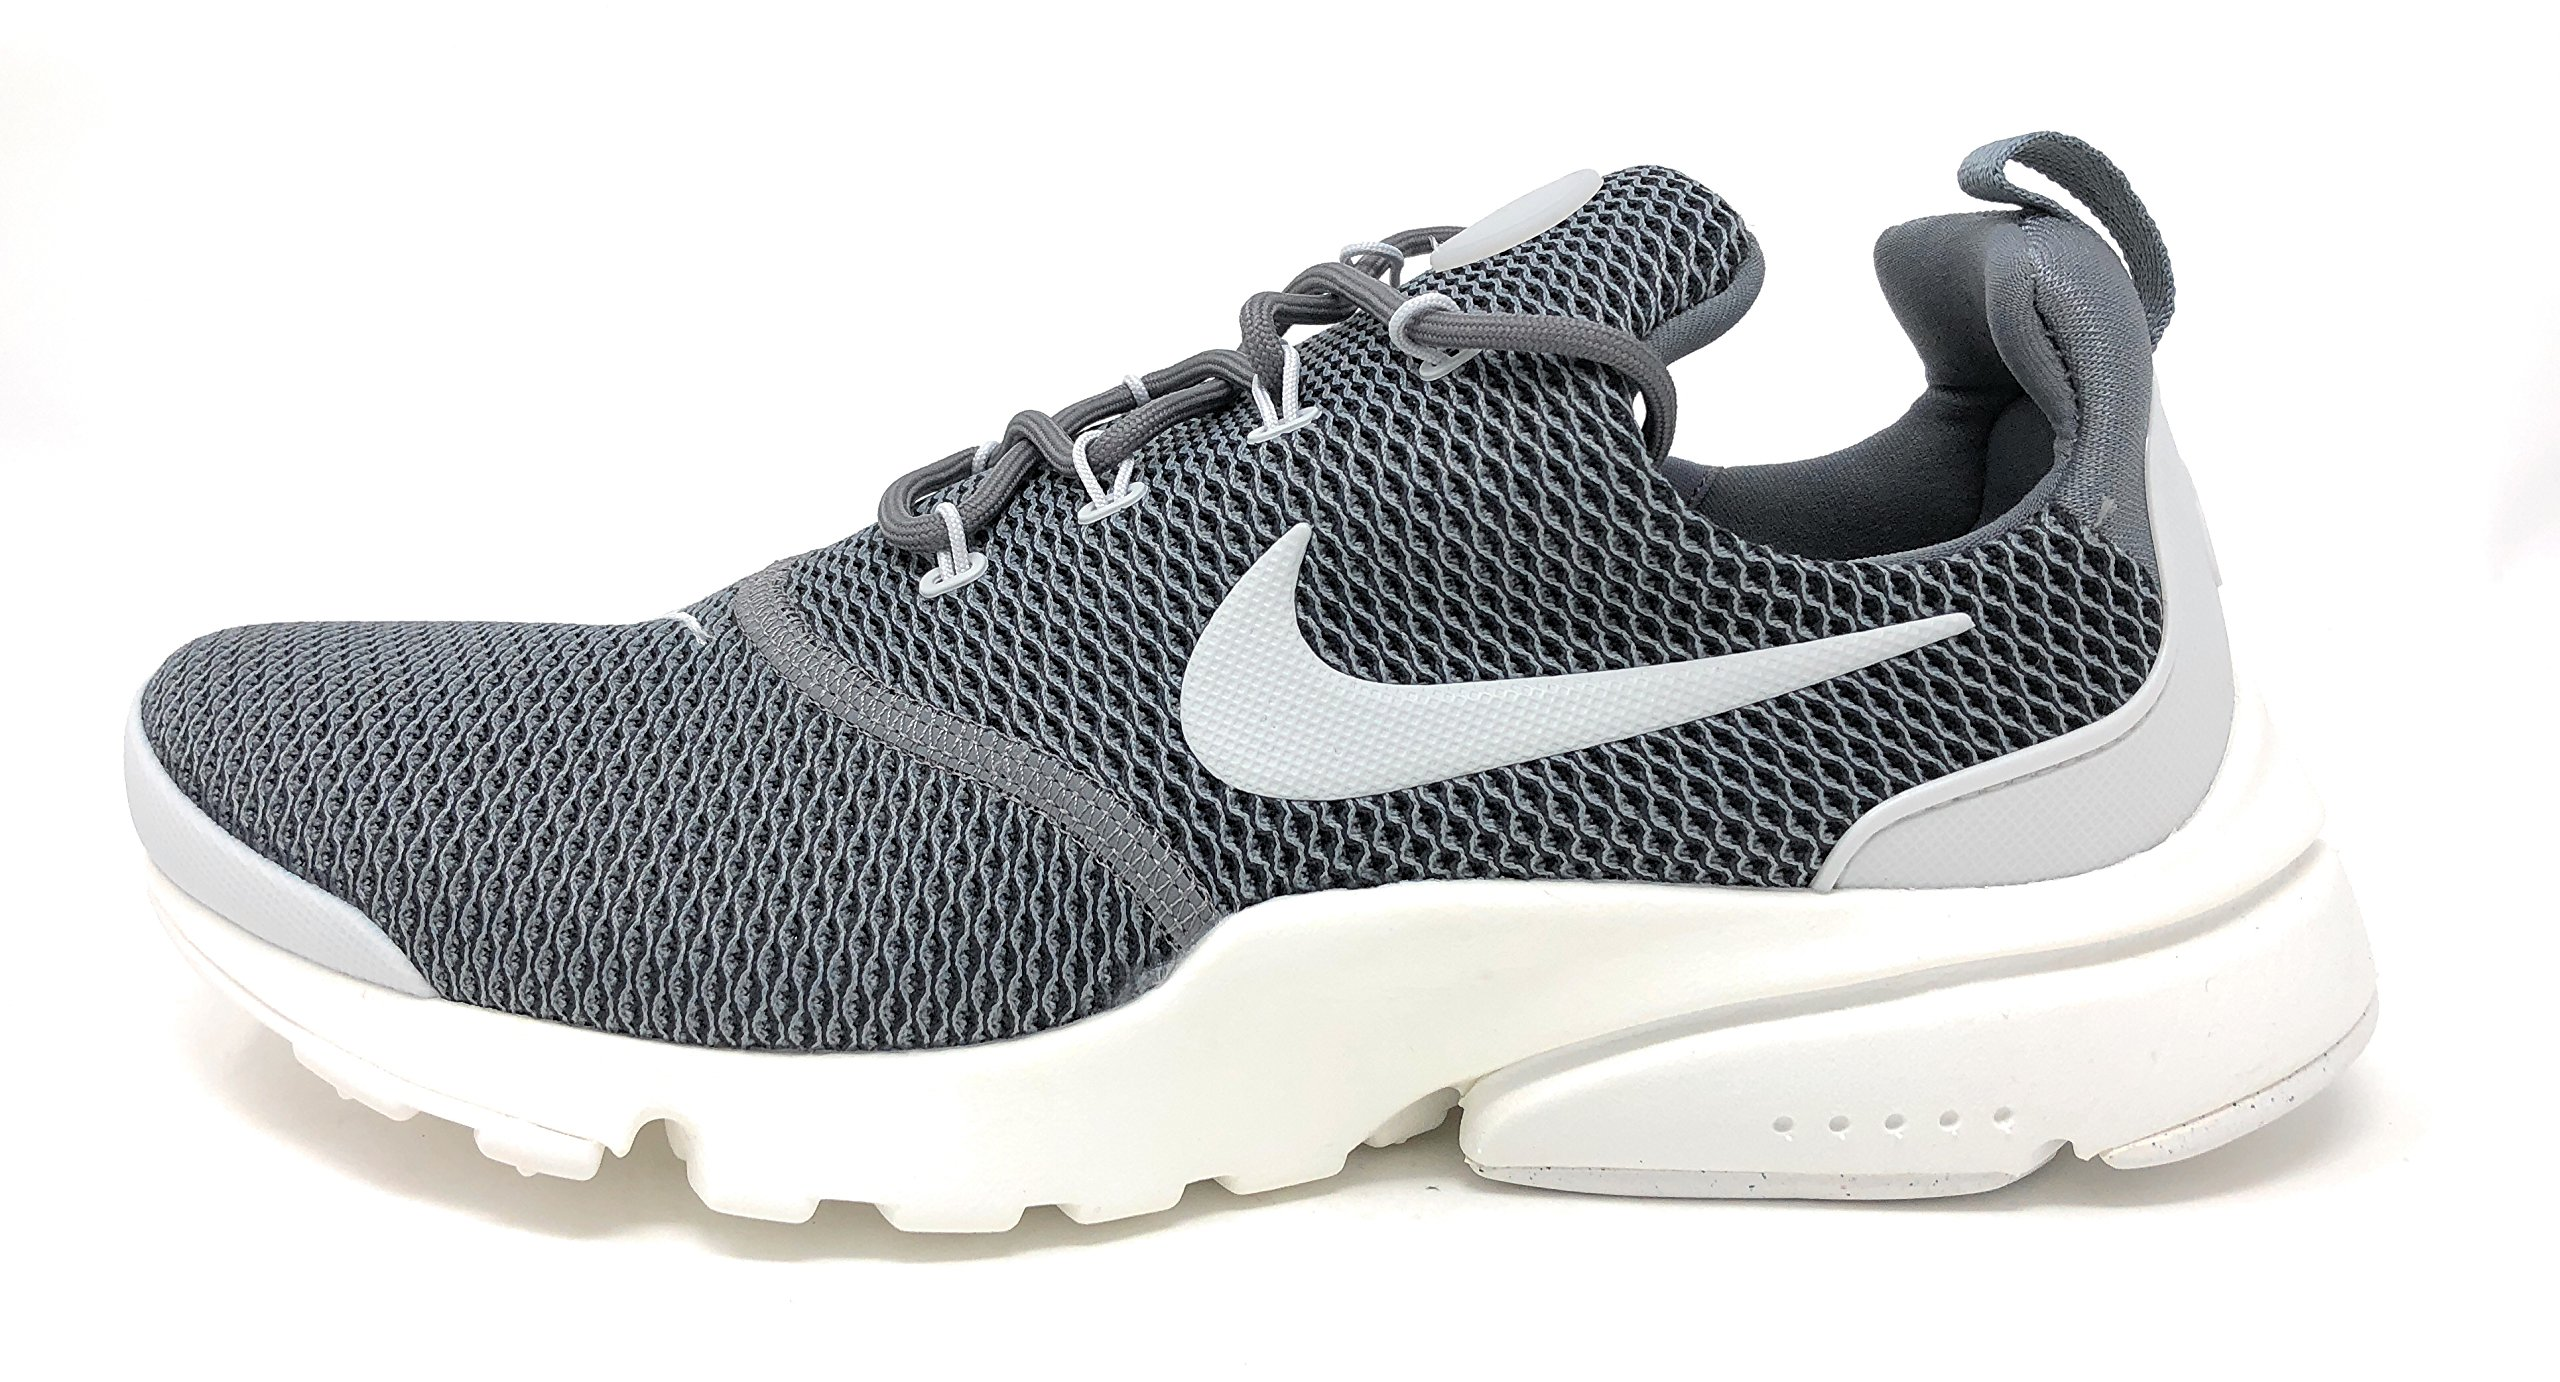 6aa0ca039 Galleon - Nike Womens Presto Fly Running Trainers 910569 Sneakers Shoes (UK  6 US 8.5 EU 40, Cool Grey Pure Platinum 003)